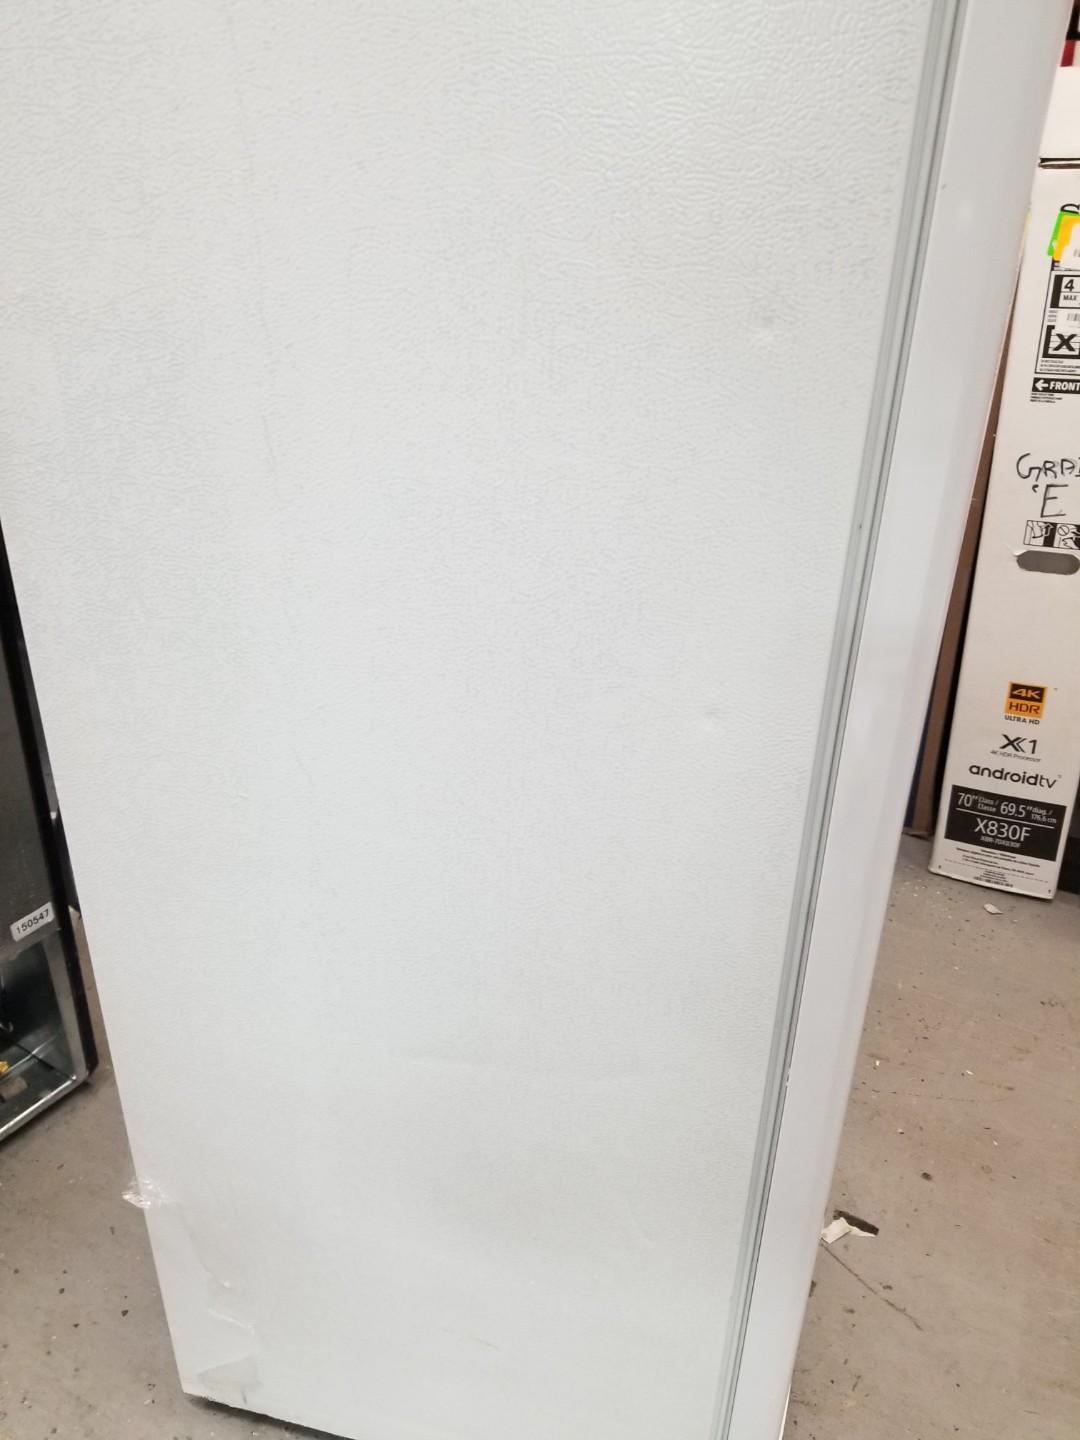 NEW YEAR SALE NEW RCA 6.5 CU FT. UPRIGHT FREEZER ONLY $280!